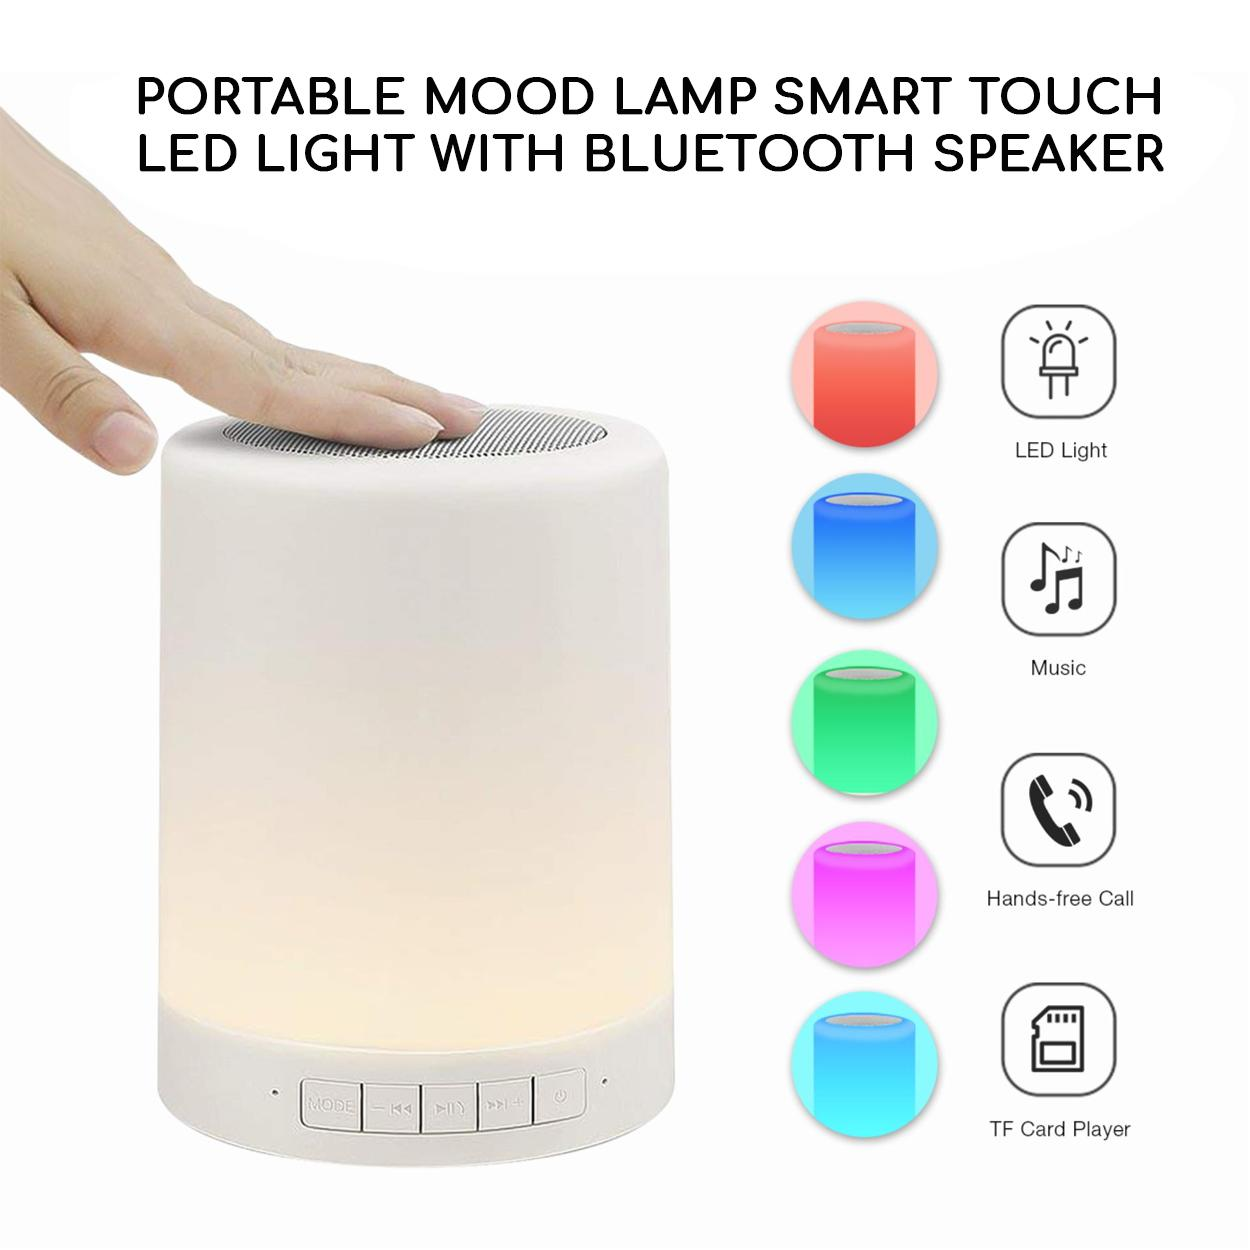 Wireless Bluetooth Speaker with Smart Touch LED Mood Lamp (White